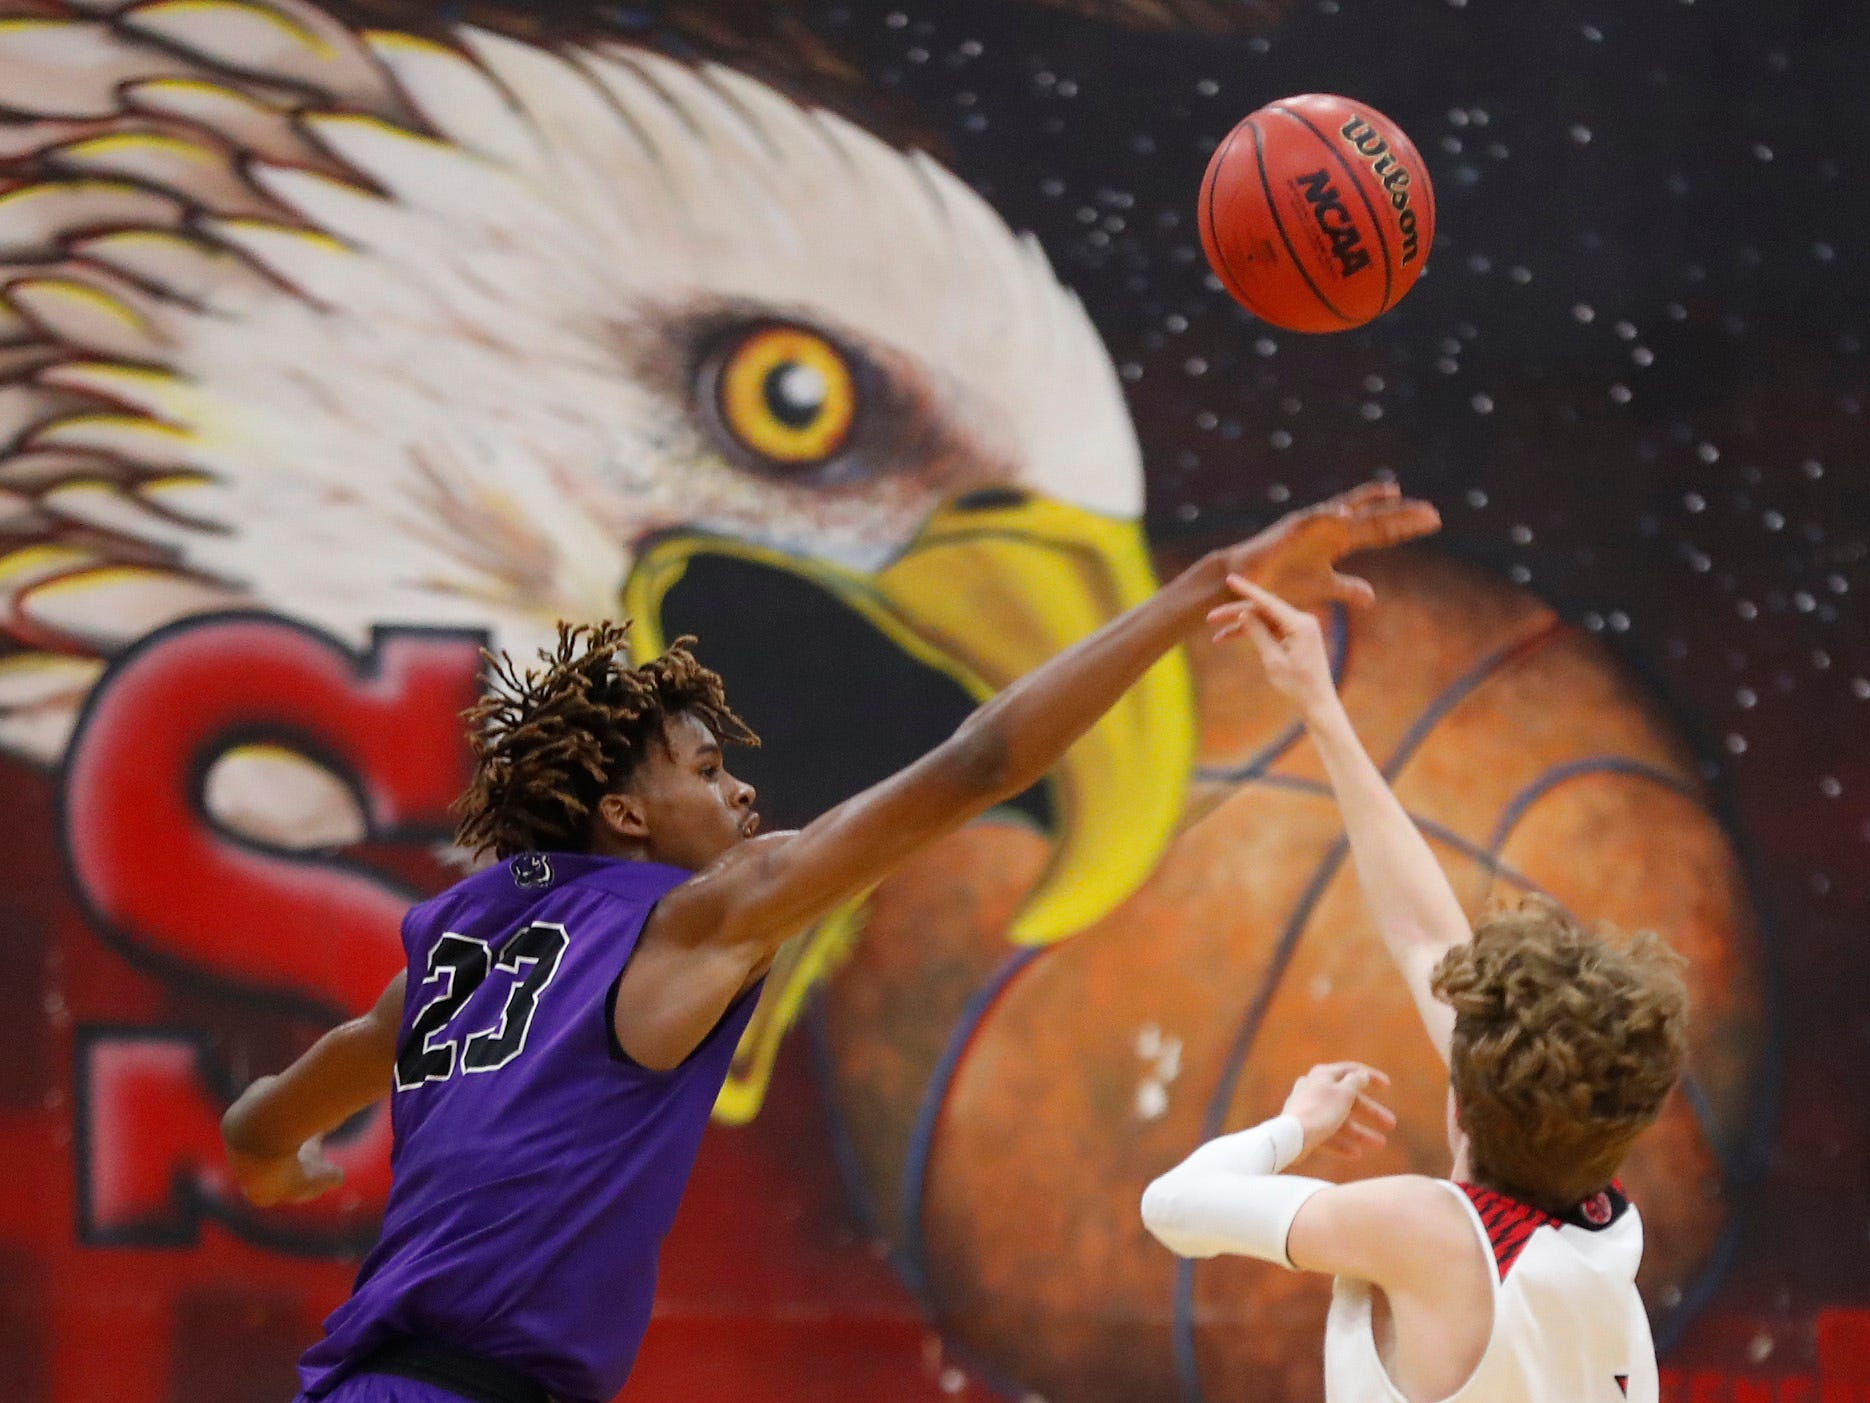 Millennium's DaRon Holmes (23) blocks a shot from Ironwood's Aaron Rice (3) during the first half of the 5A state quarterfinal game at Ironwood High School in Glendale, Ariz. on February 15, 2019.